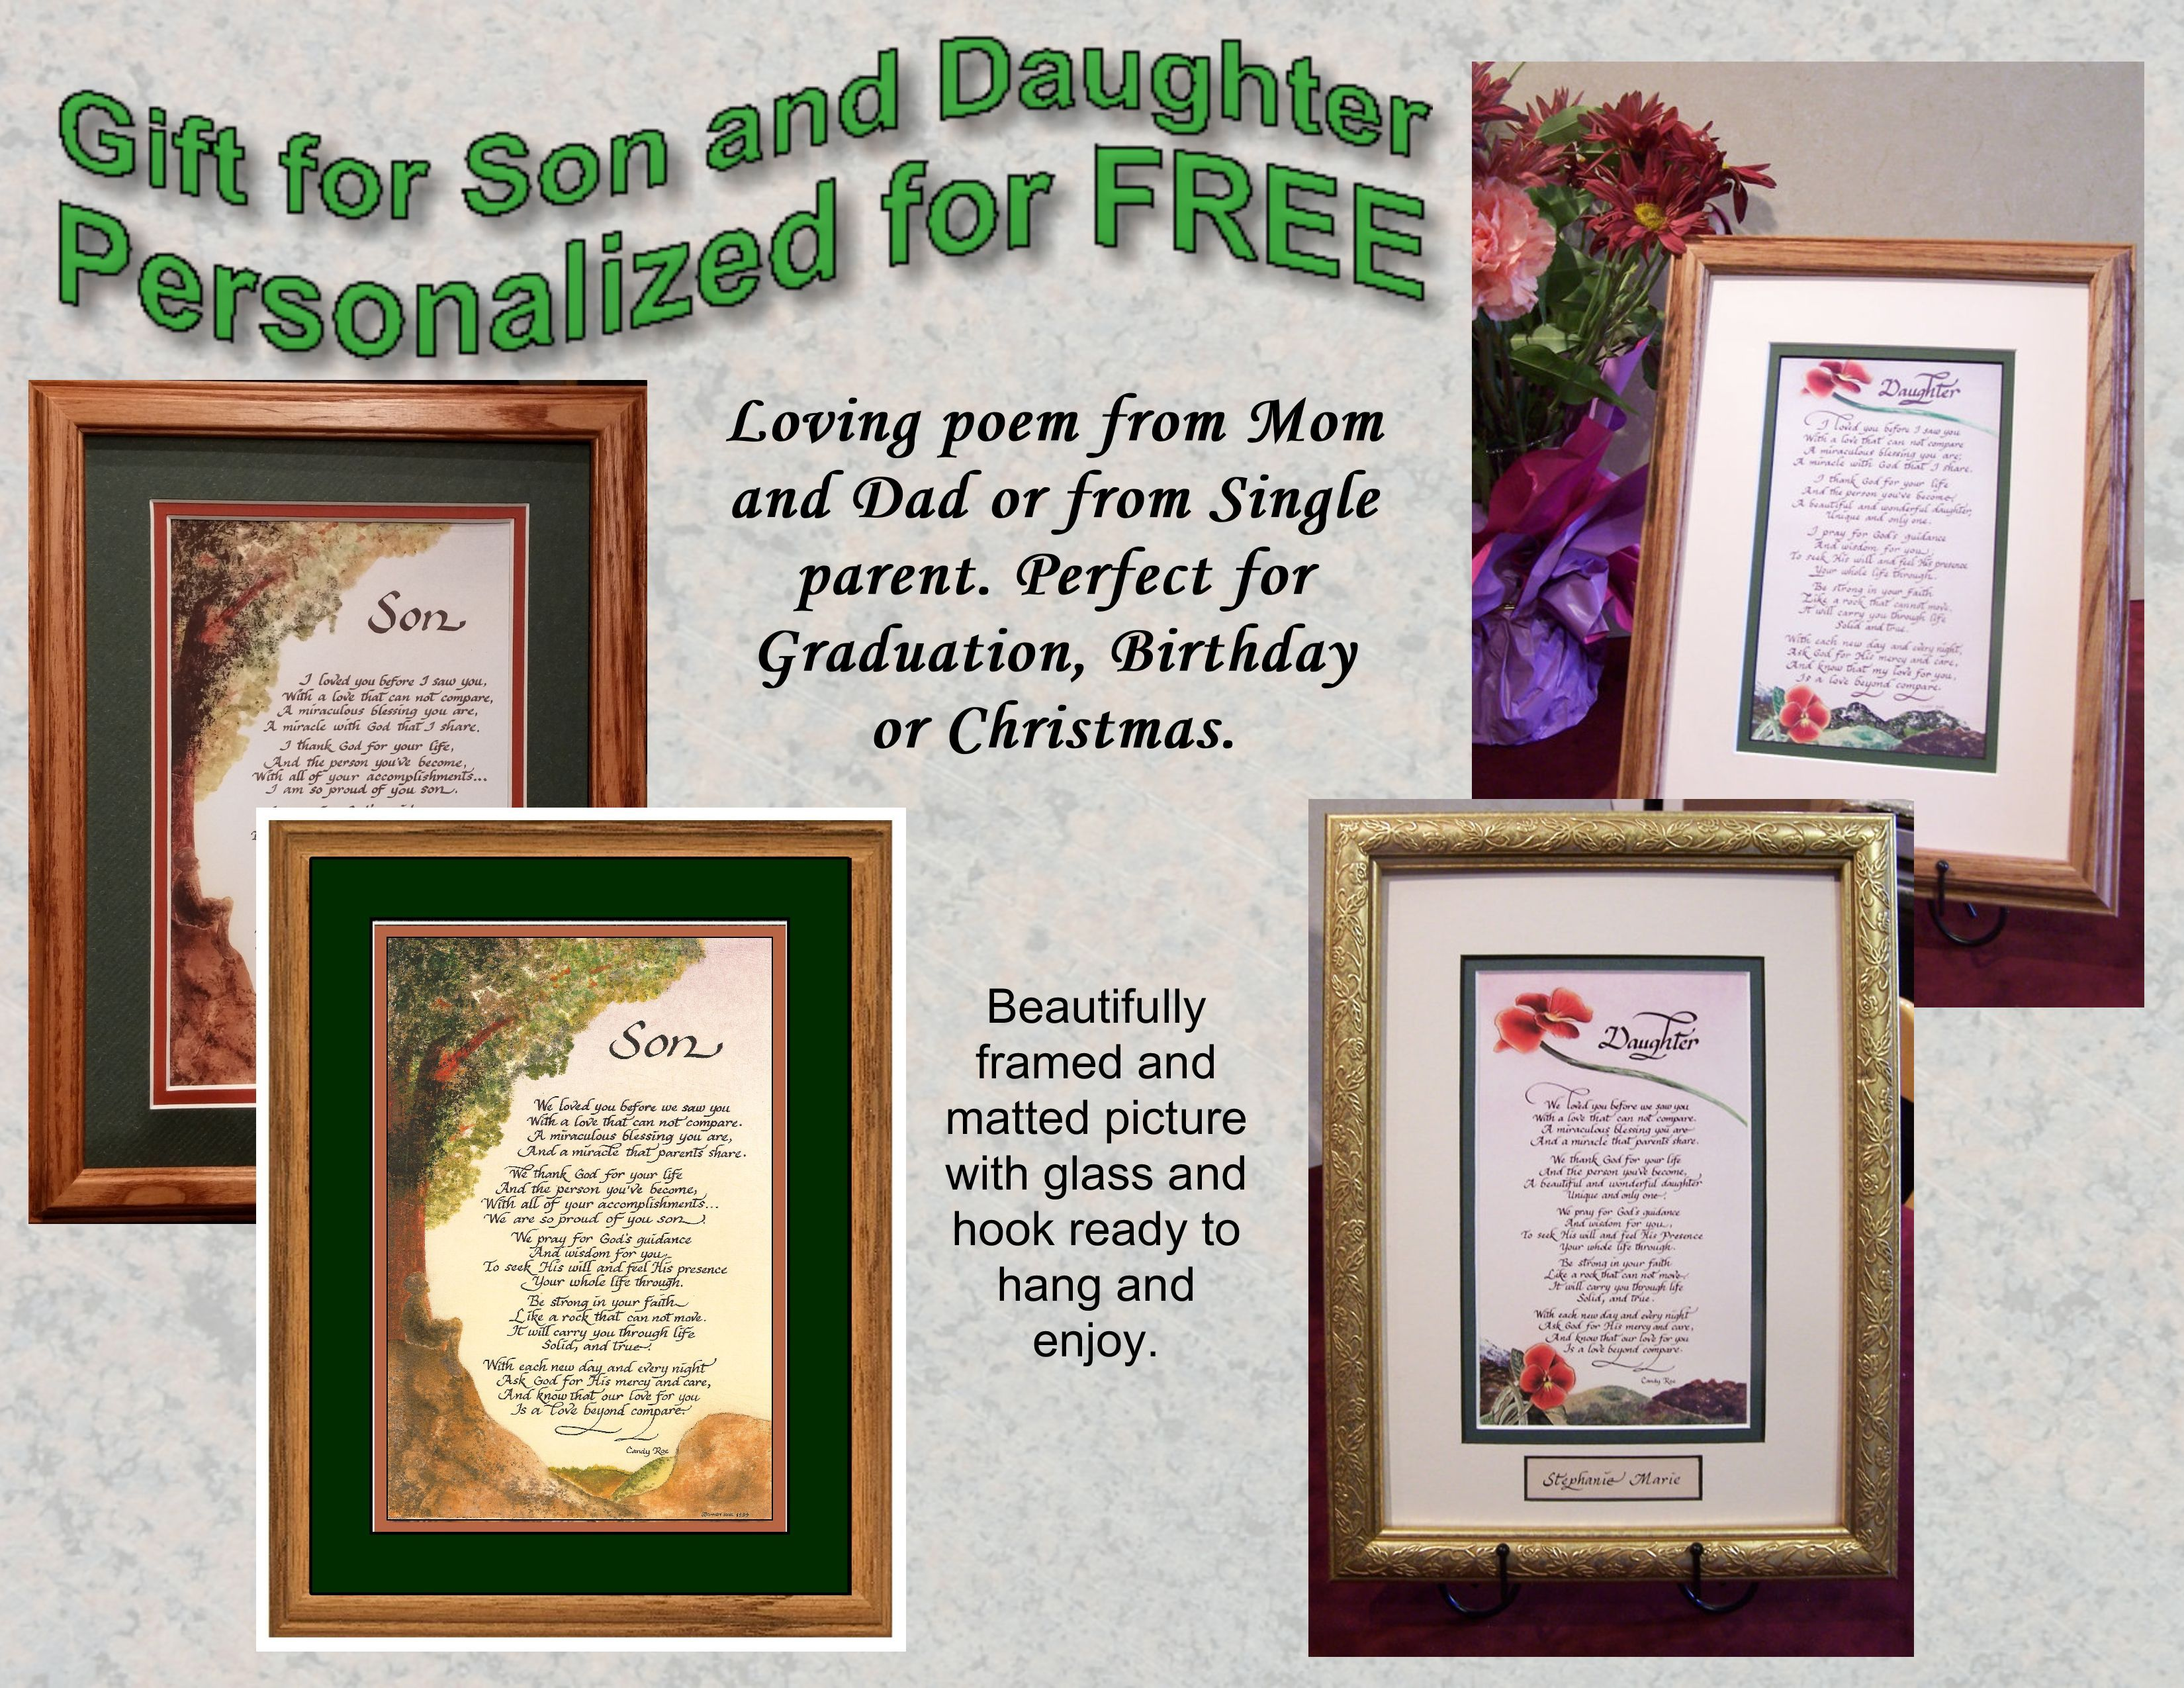 Graduation gift from Mom and Dad or Single parent. Beautiful poem to son or daughter. Personalized with name for free! http://amenchristiancalligraphy.com/t/gifts-for-children-and-teens